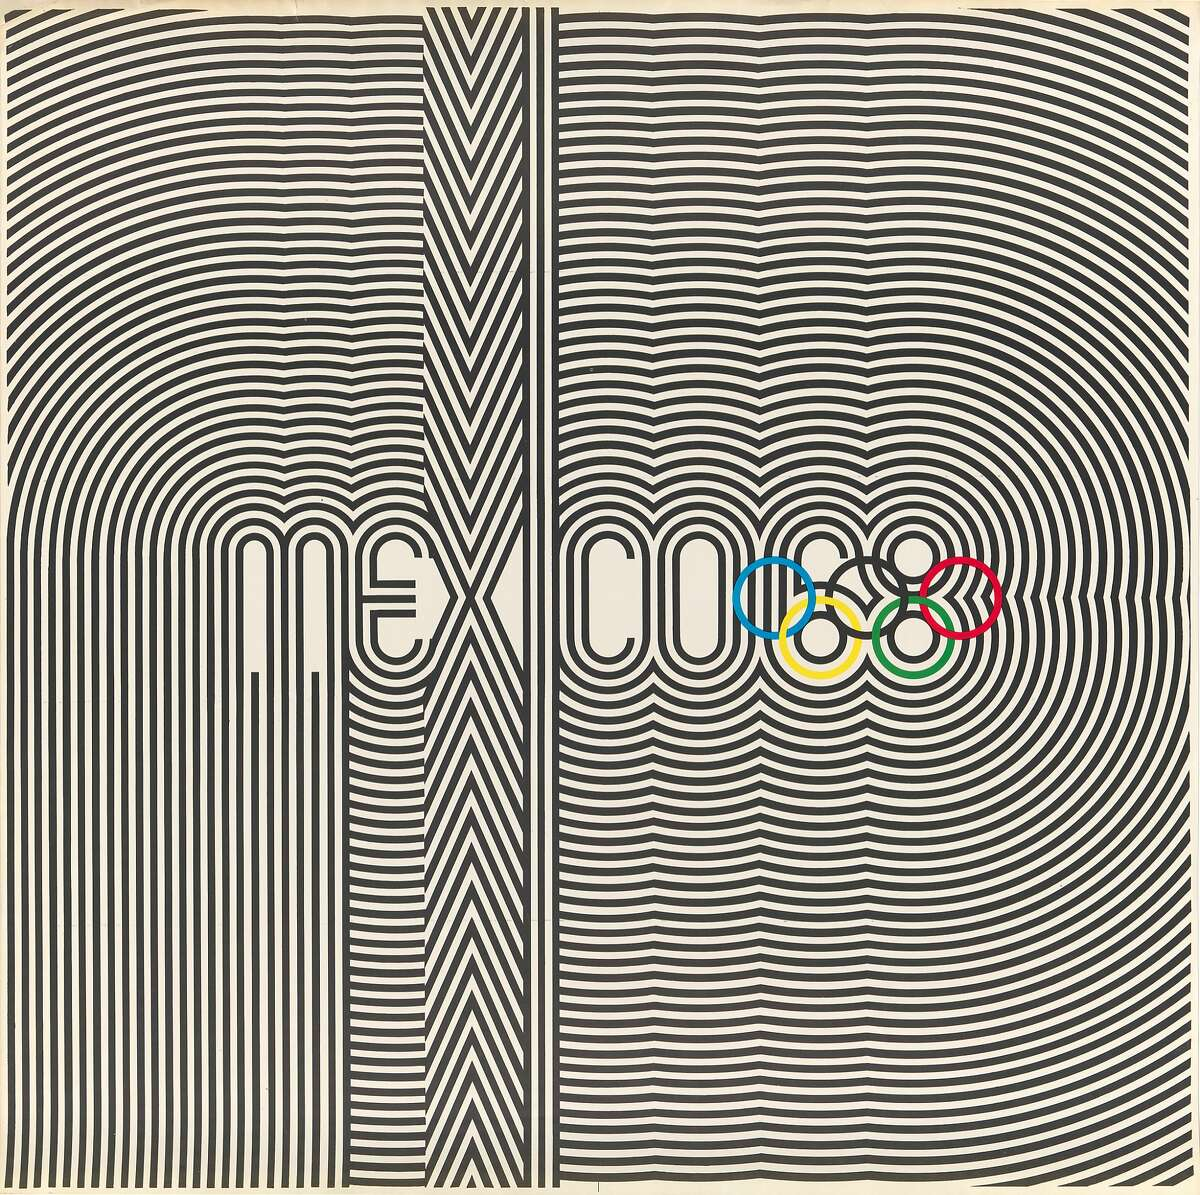 Lance Wyman, Eduardo Terrazas, and Department of Publications and Urban Design, Organizing Committee of the XIX Olympiad, Olympic logo poster, 1967; San Francisco Museum of Modern Art, Accessions Committee Fund purchase; � Lance Wyman